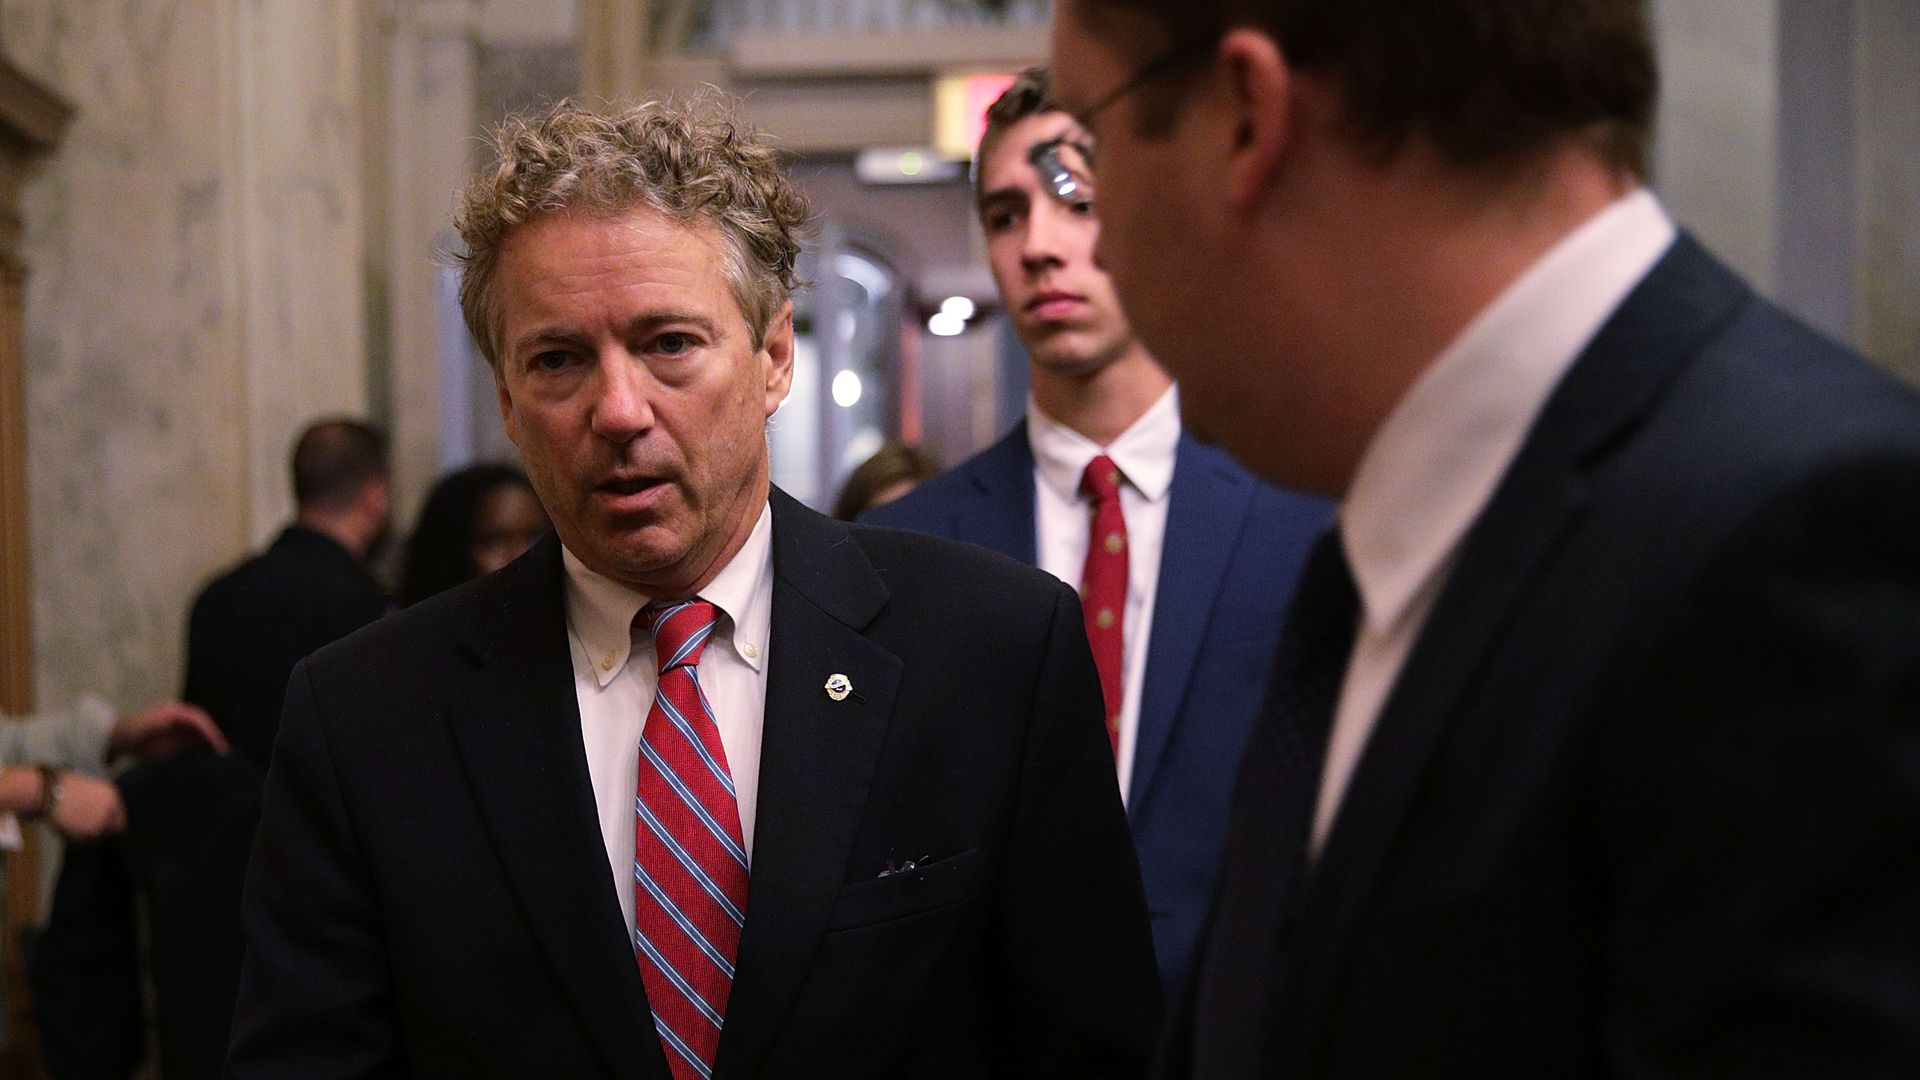 Rand Paul in suit and red tie.